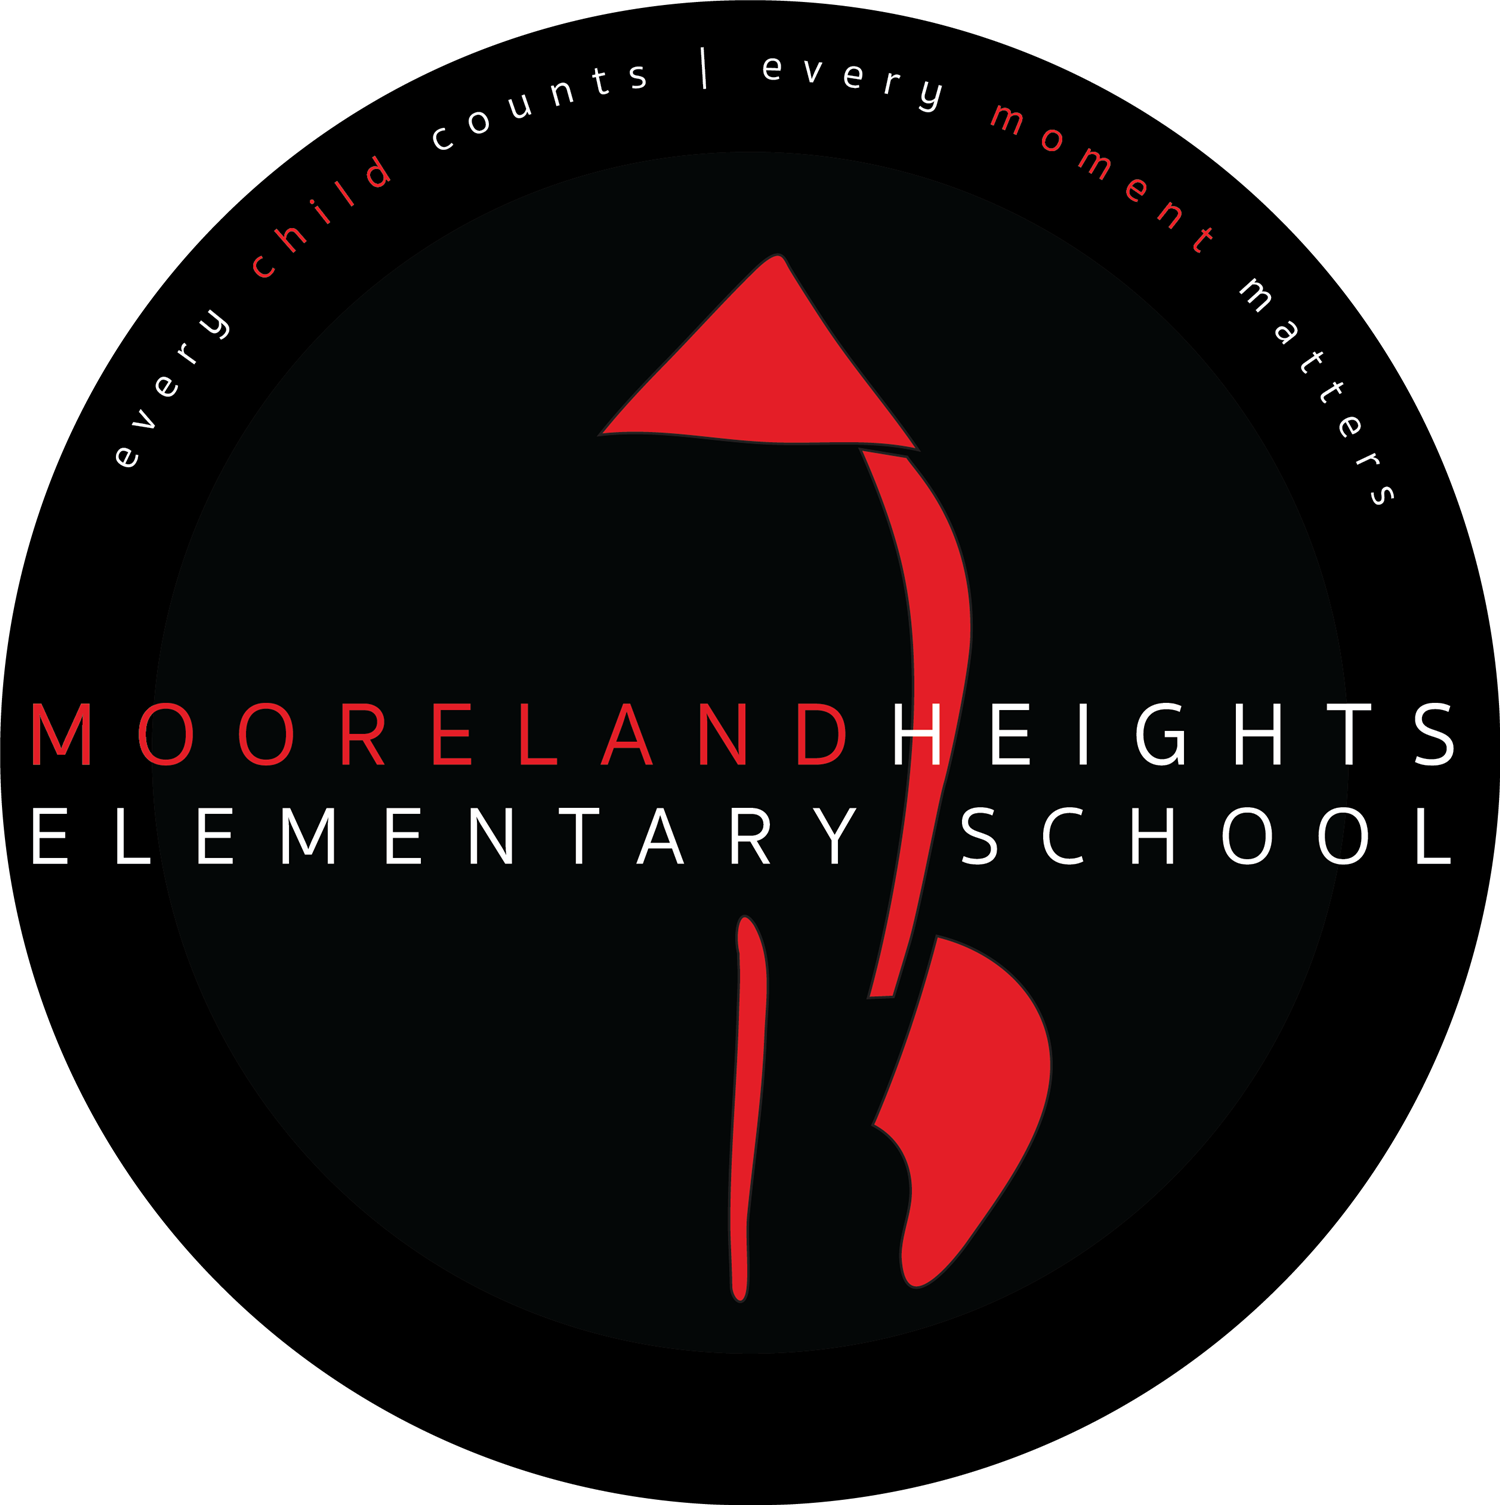 Mooreland Heights Elementary